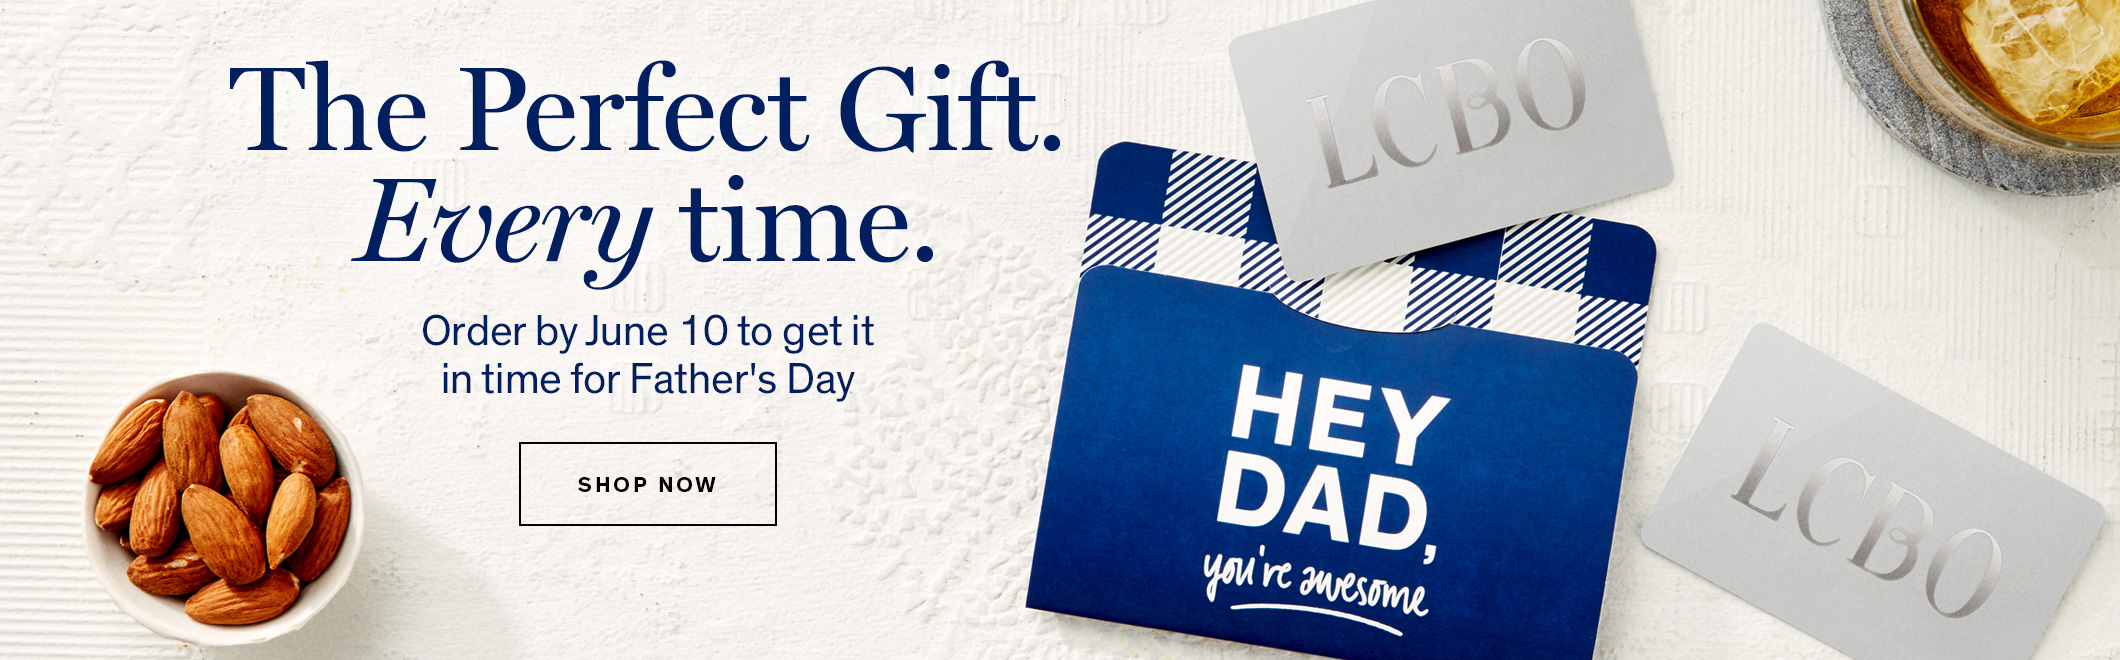 The perfect gift. Every time. Order it by June 10 to get it on time for Father's Day.